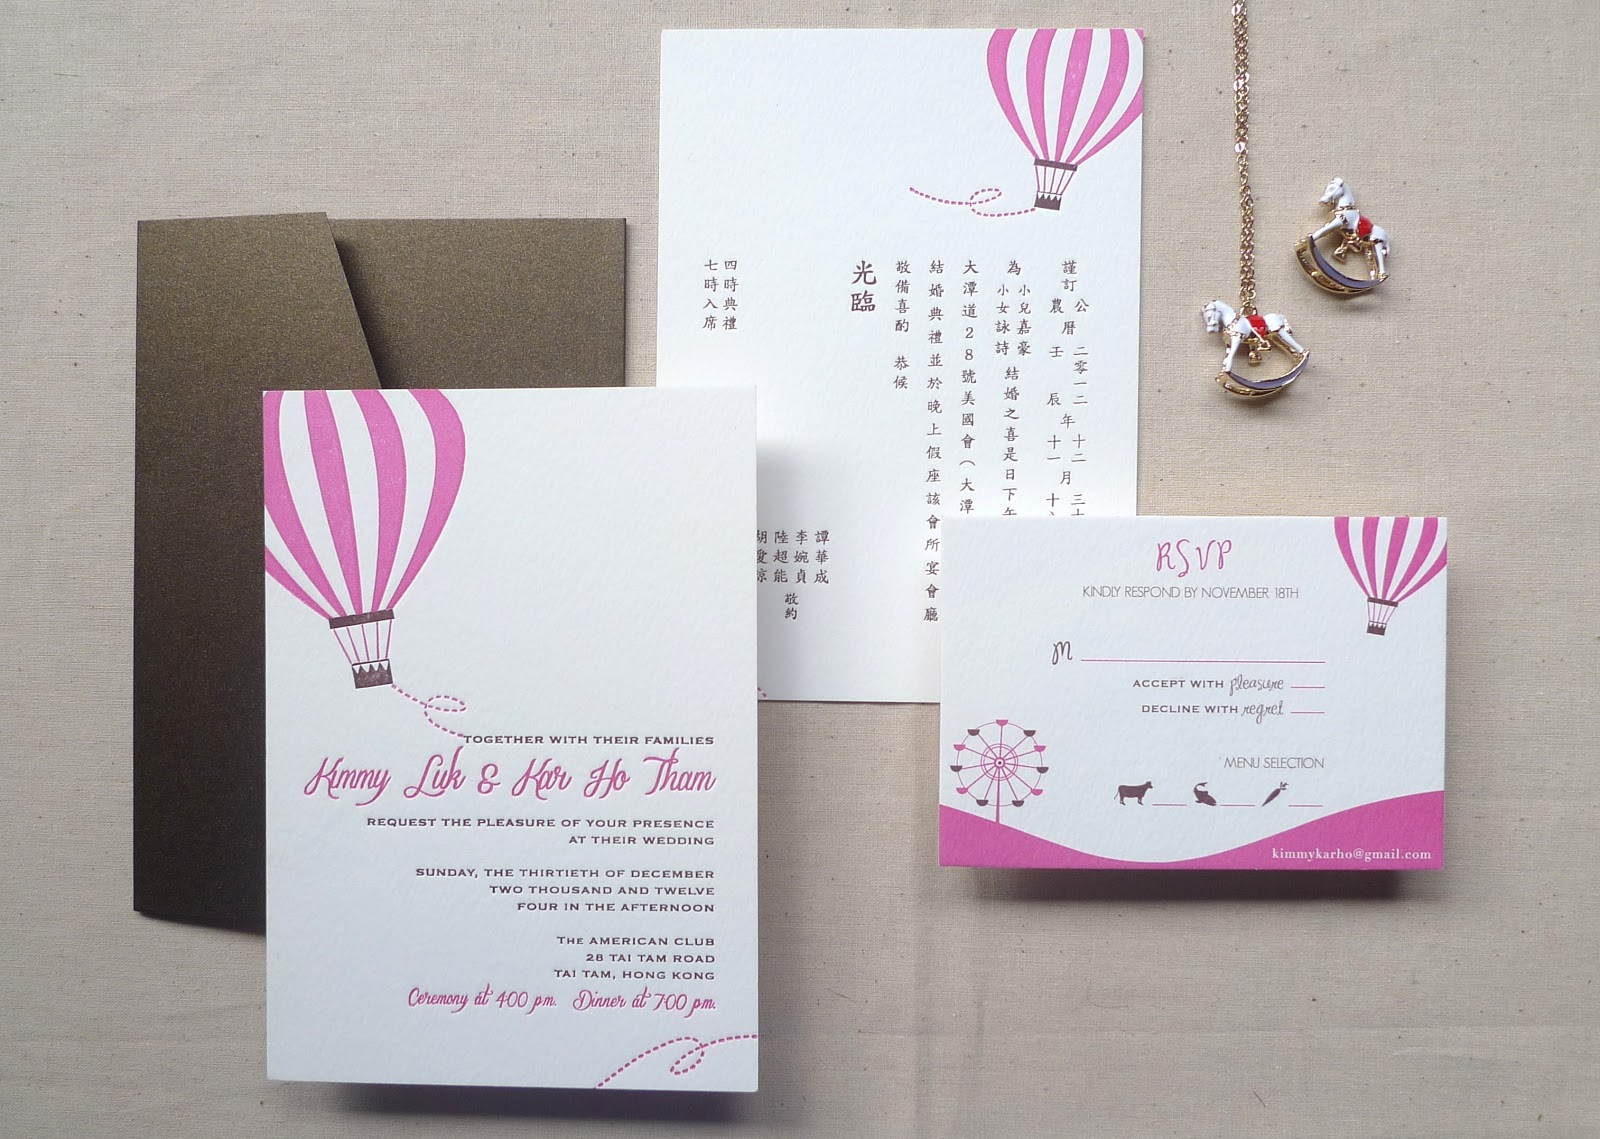 wedding invitation text format for friends%0A wedding invitation card wording in chinese how to write wedding invitation  in chinese wedding invitation cards